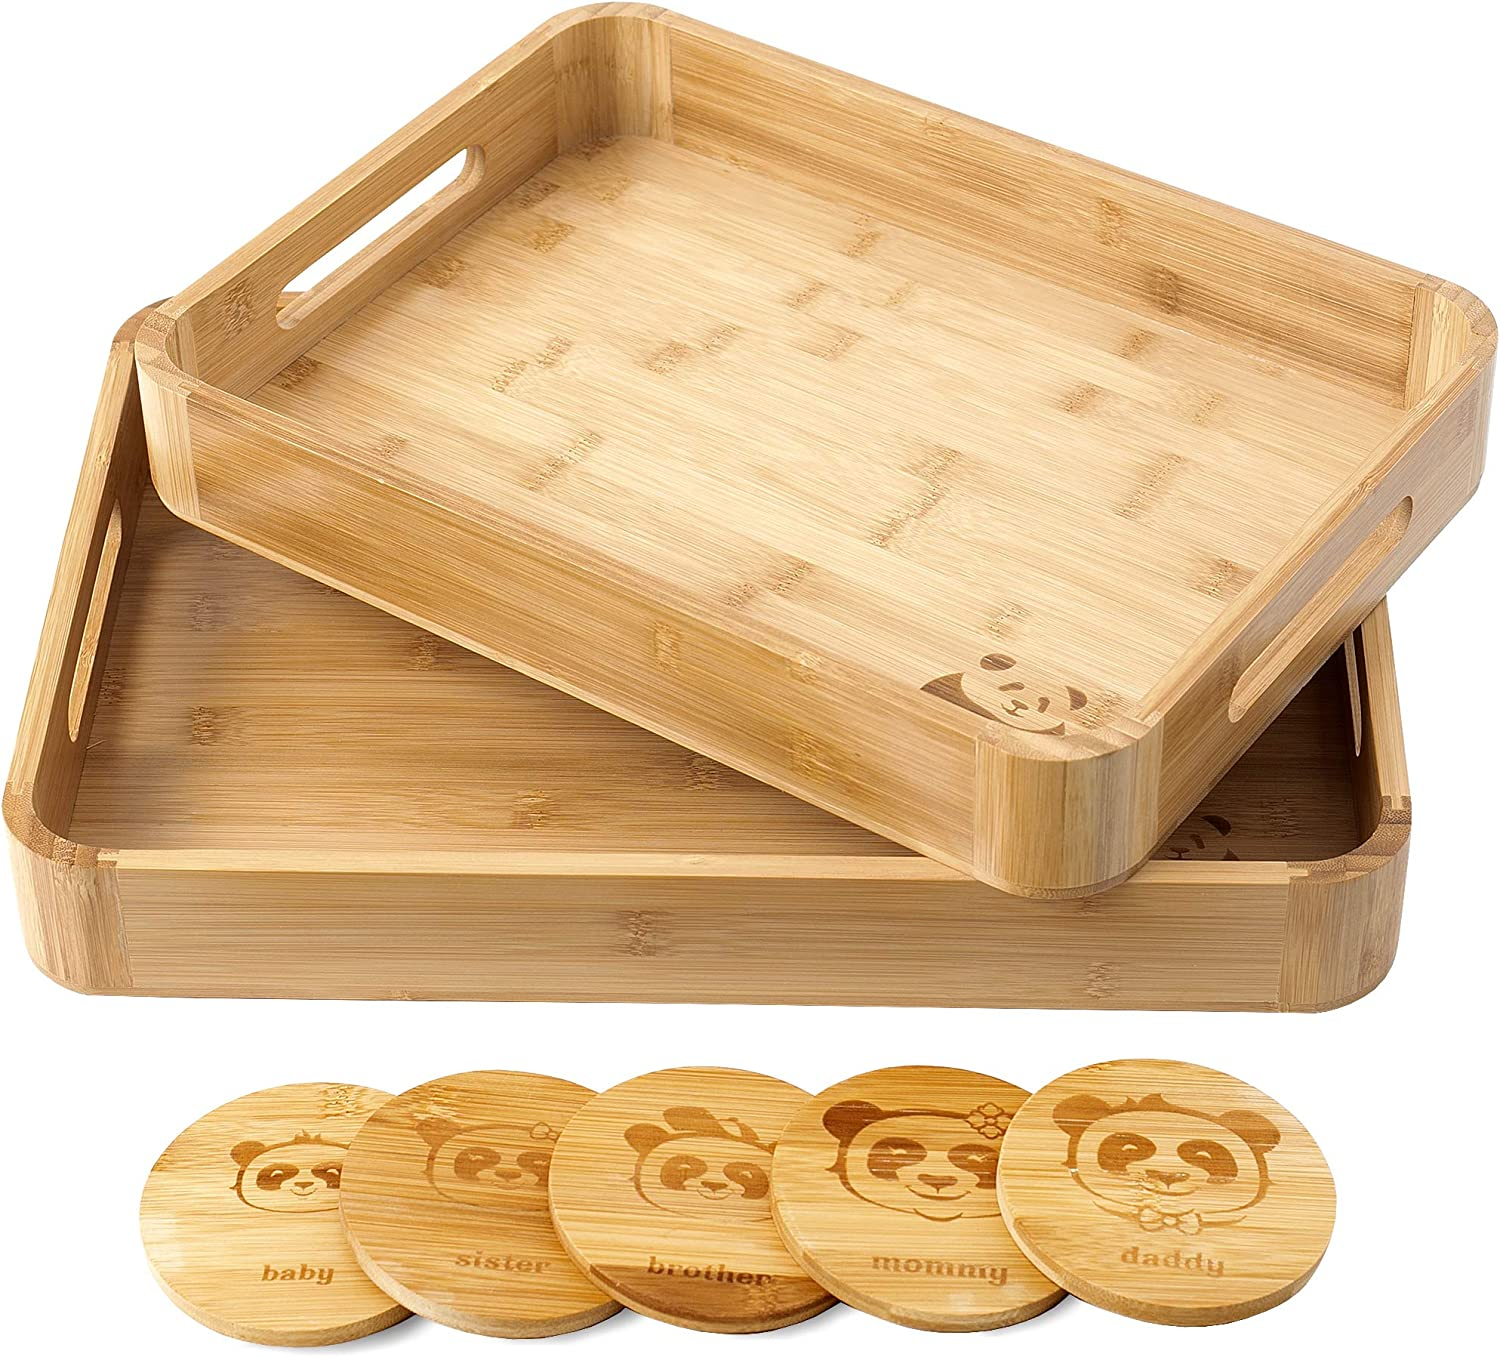 Panda Home Serving Tray Set of 2 Bamboo Trays with 5 Cup Coasters– (17x12 and 15x11.5) Bamboo Tray with Handle – Ottoman Wood Tray for Breakfast – Multifunctional and Practical Food Serving Trays